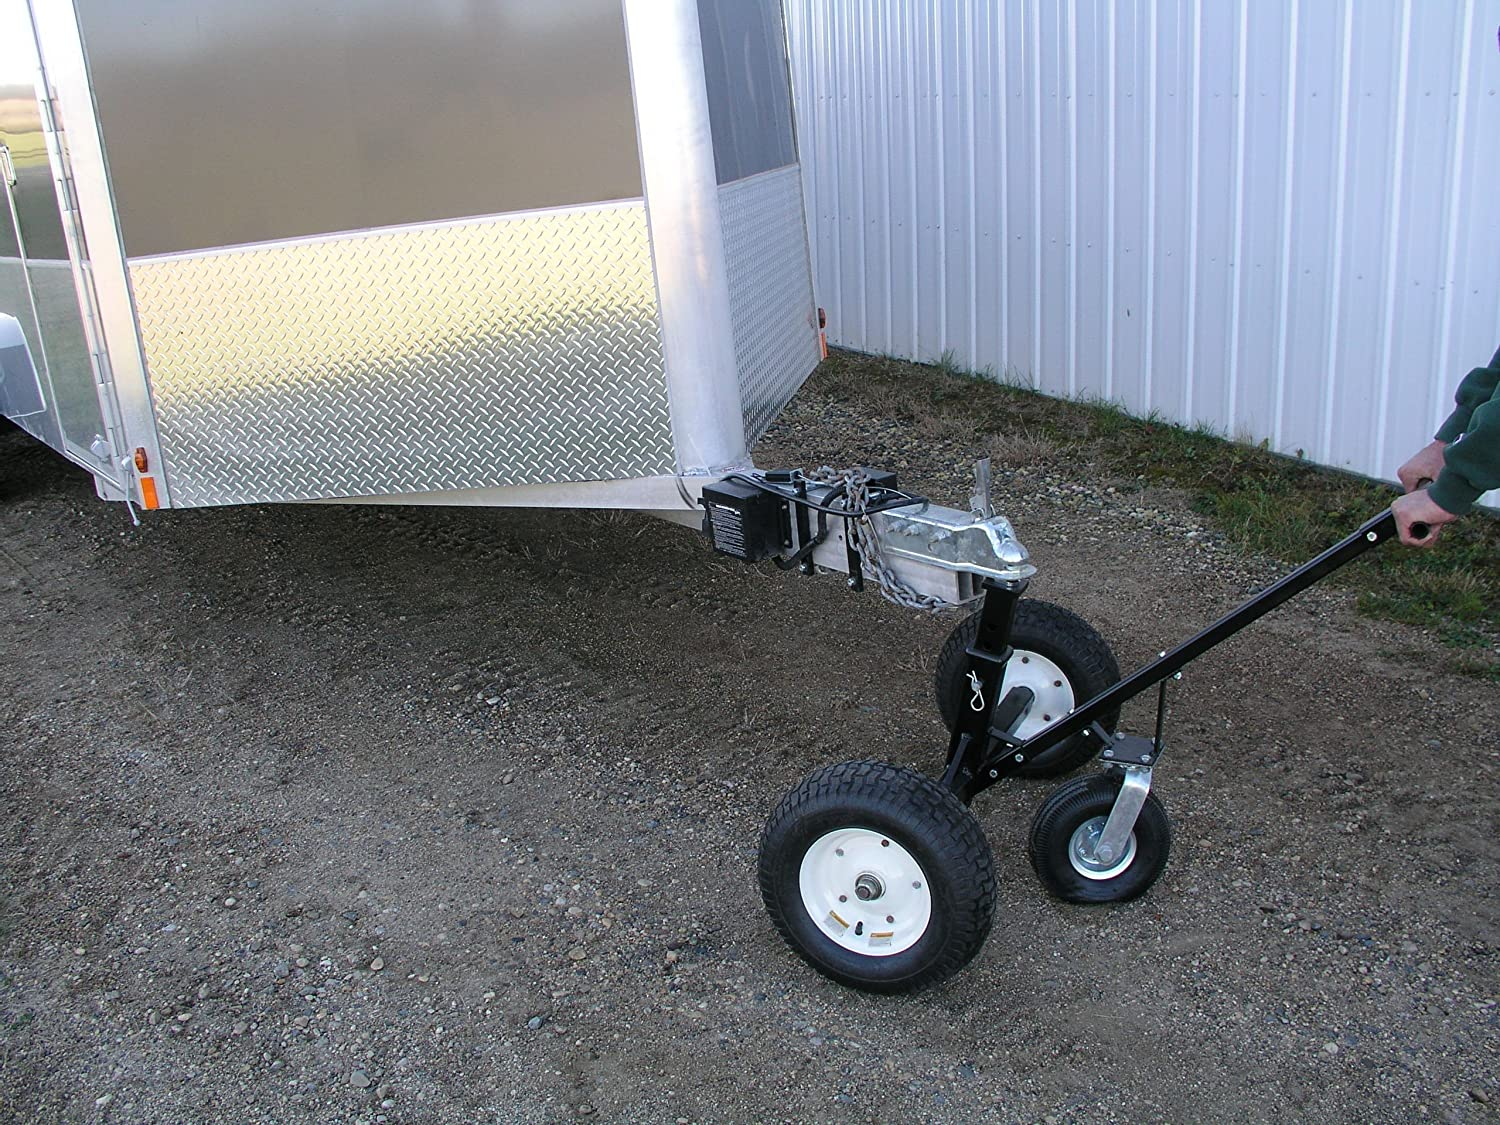 Hd Dolly Adjustable Trailer Moves With Caster Garden Pj Rims Wiring Diagram Outdoor